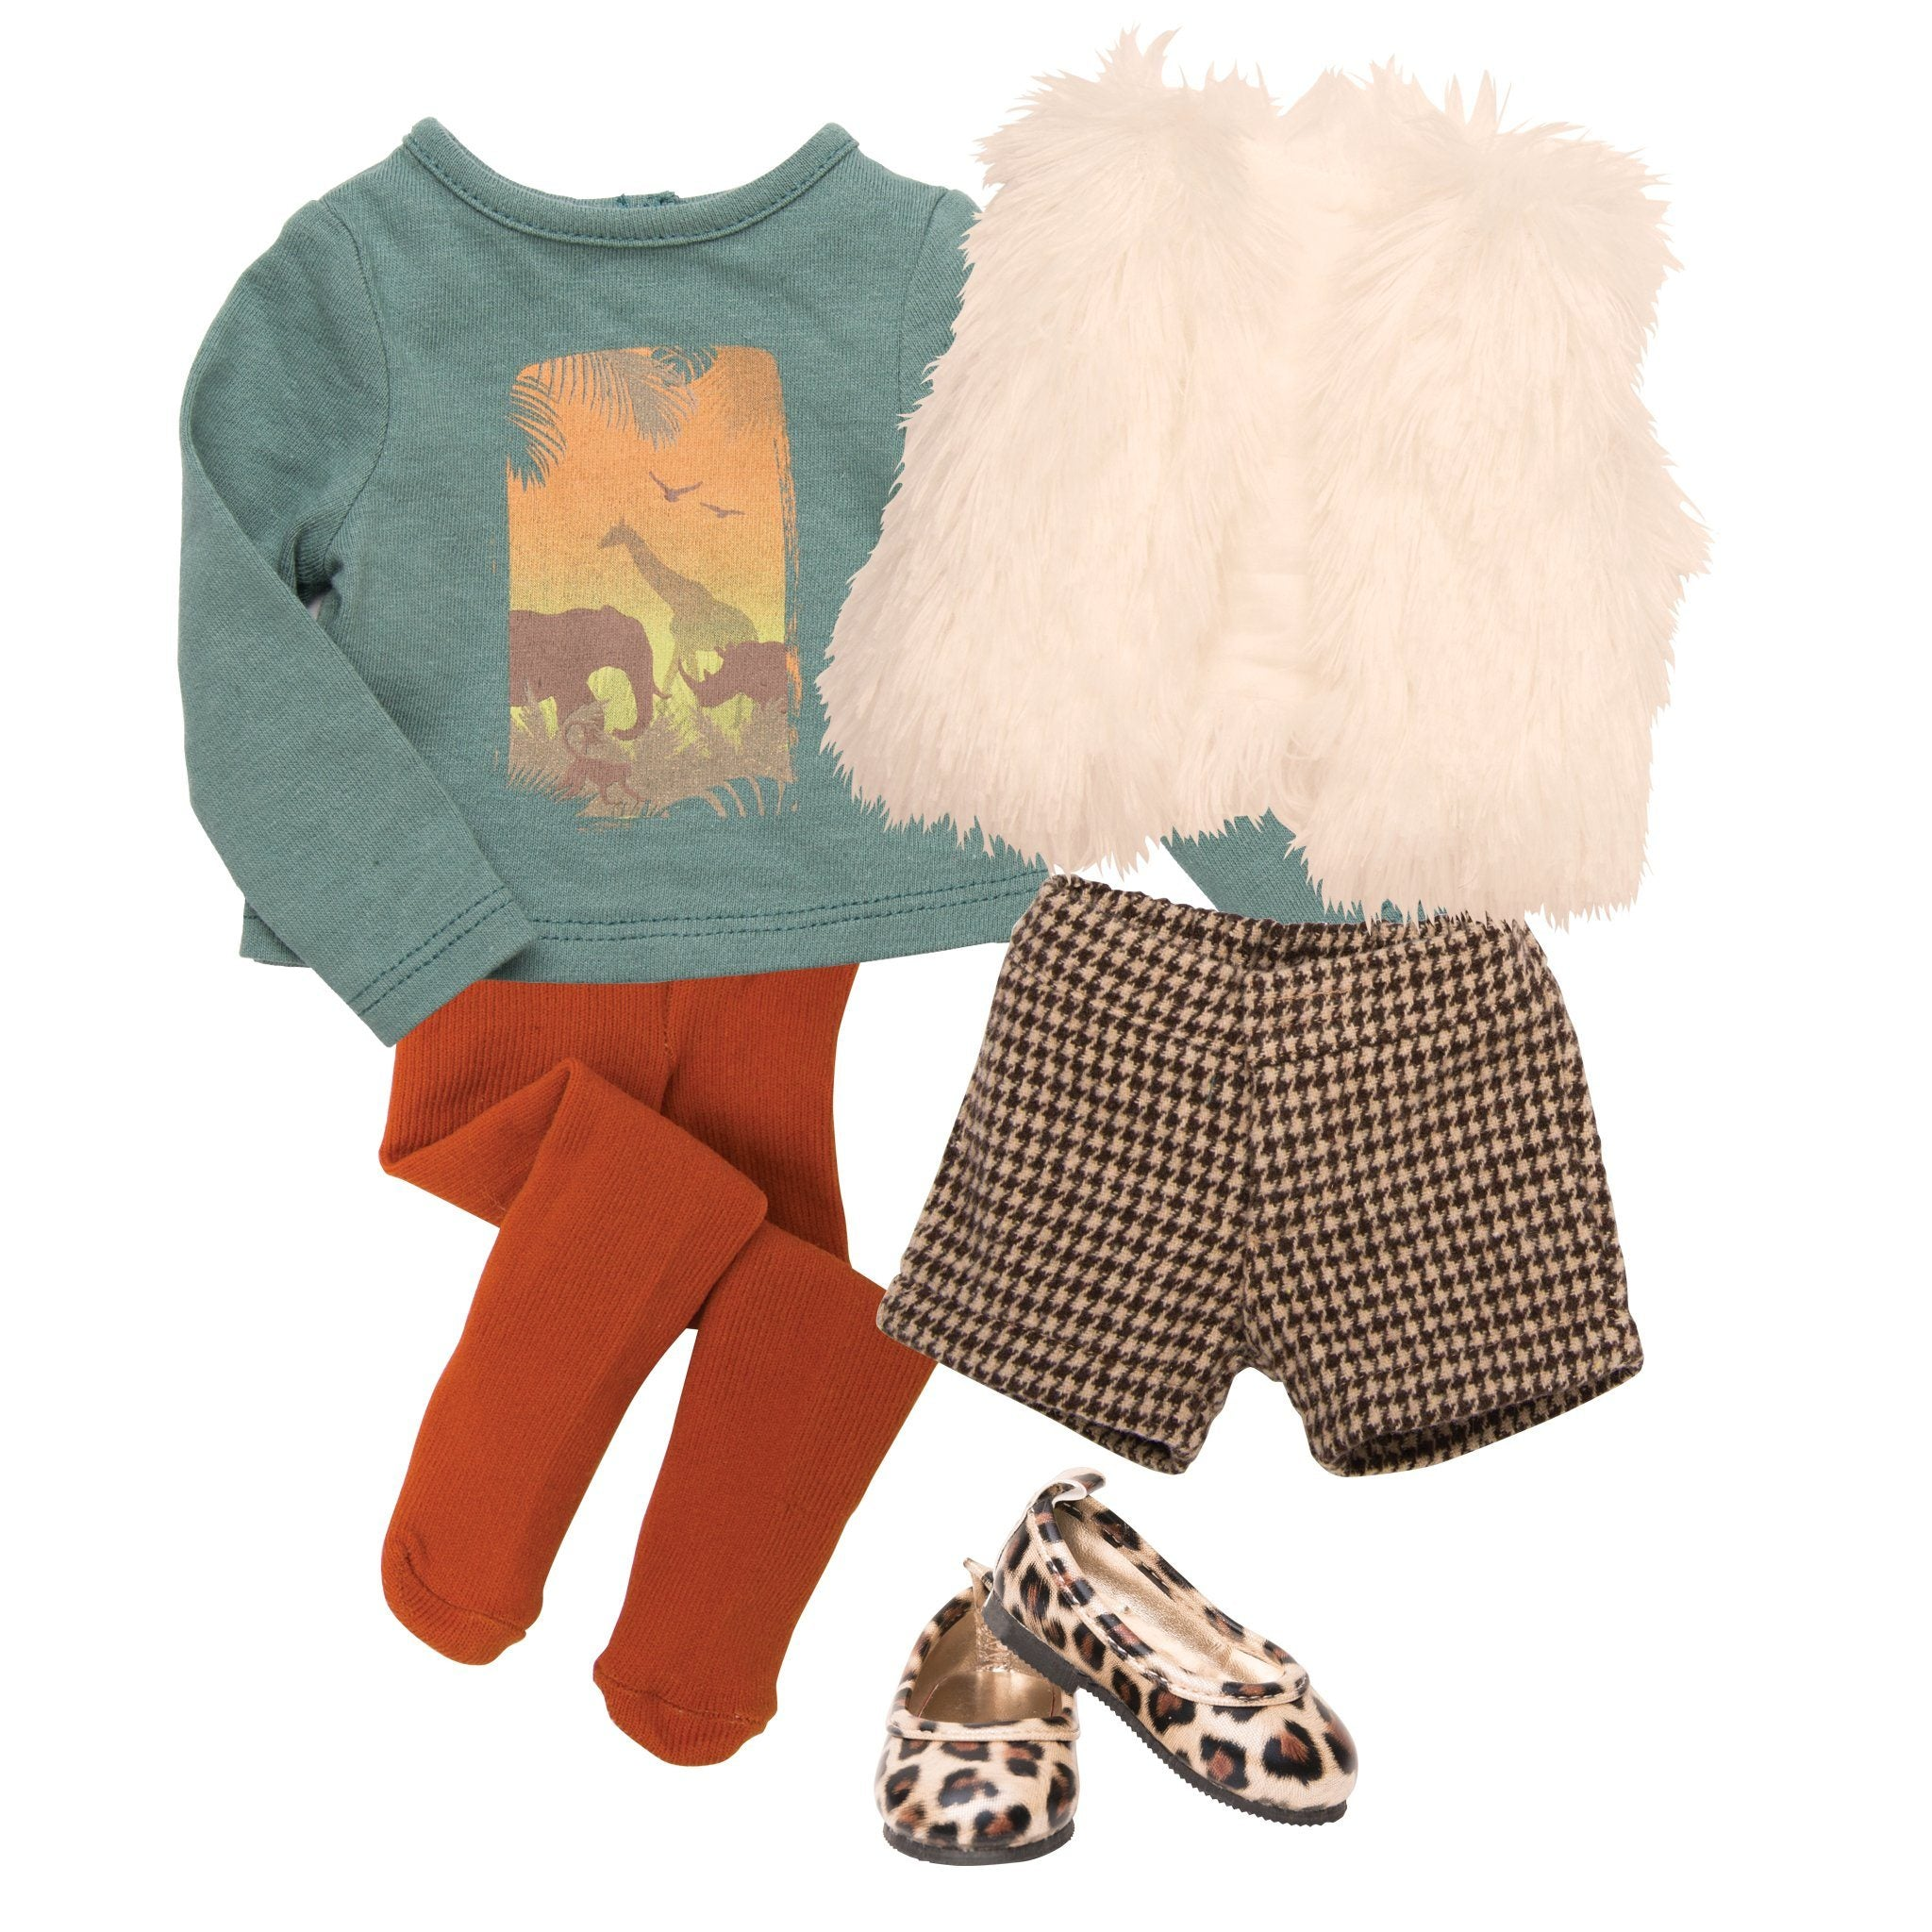 Urban Jungle white fur vest, long sleeve green shirt with jungle graphic, orange tights, brown houndstooth shorts and leopard print flats fits all 18 inch dolls.